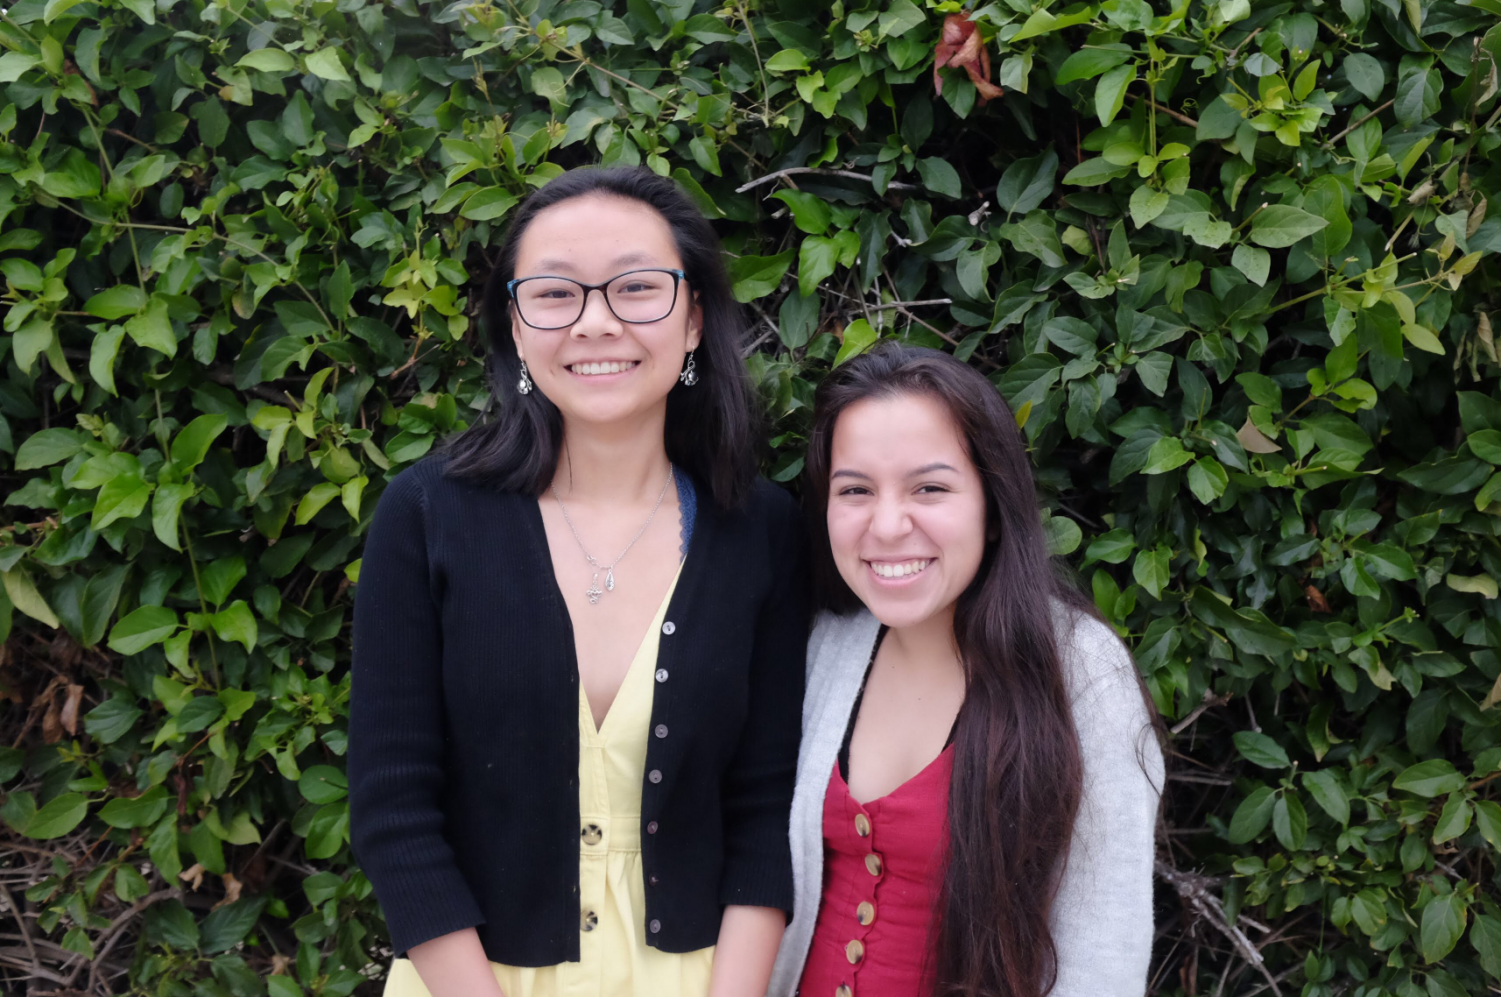 Vanessa Luna '19 and Shealyn Massey '19. Credit: Jason Messner / The Foothill Dragon Press